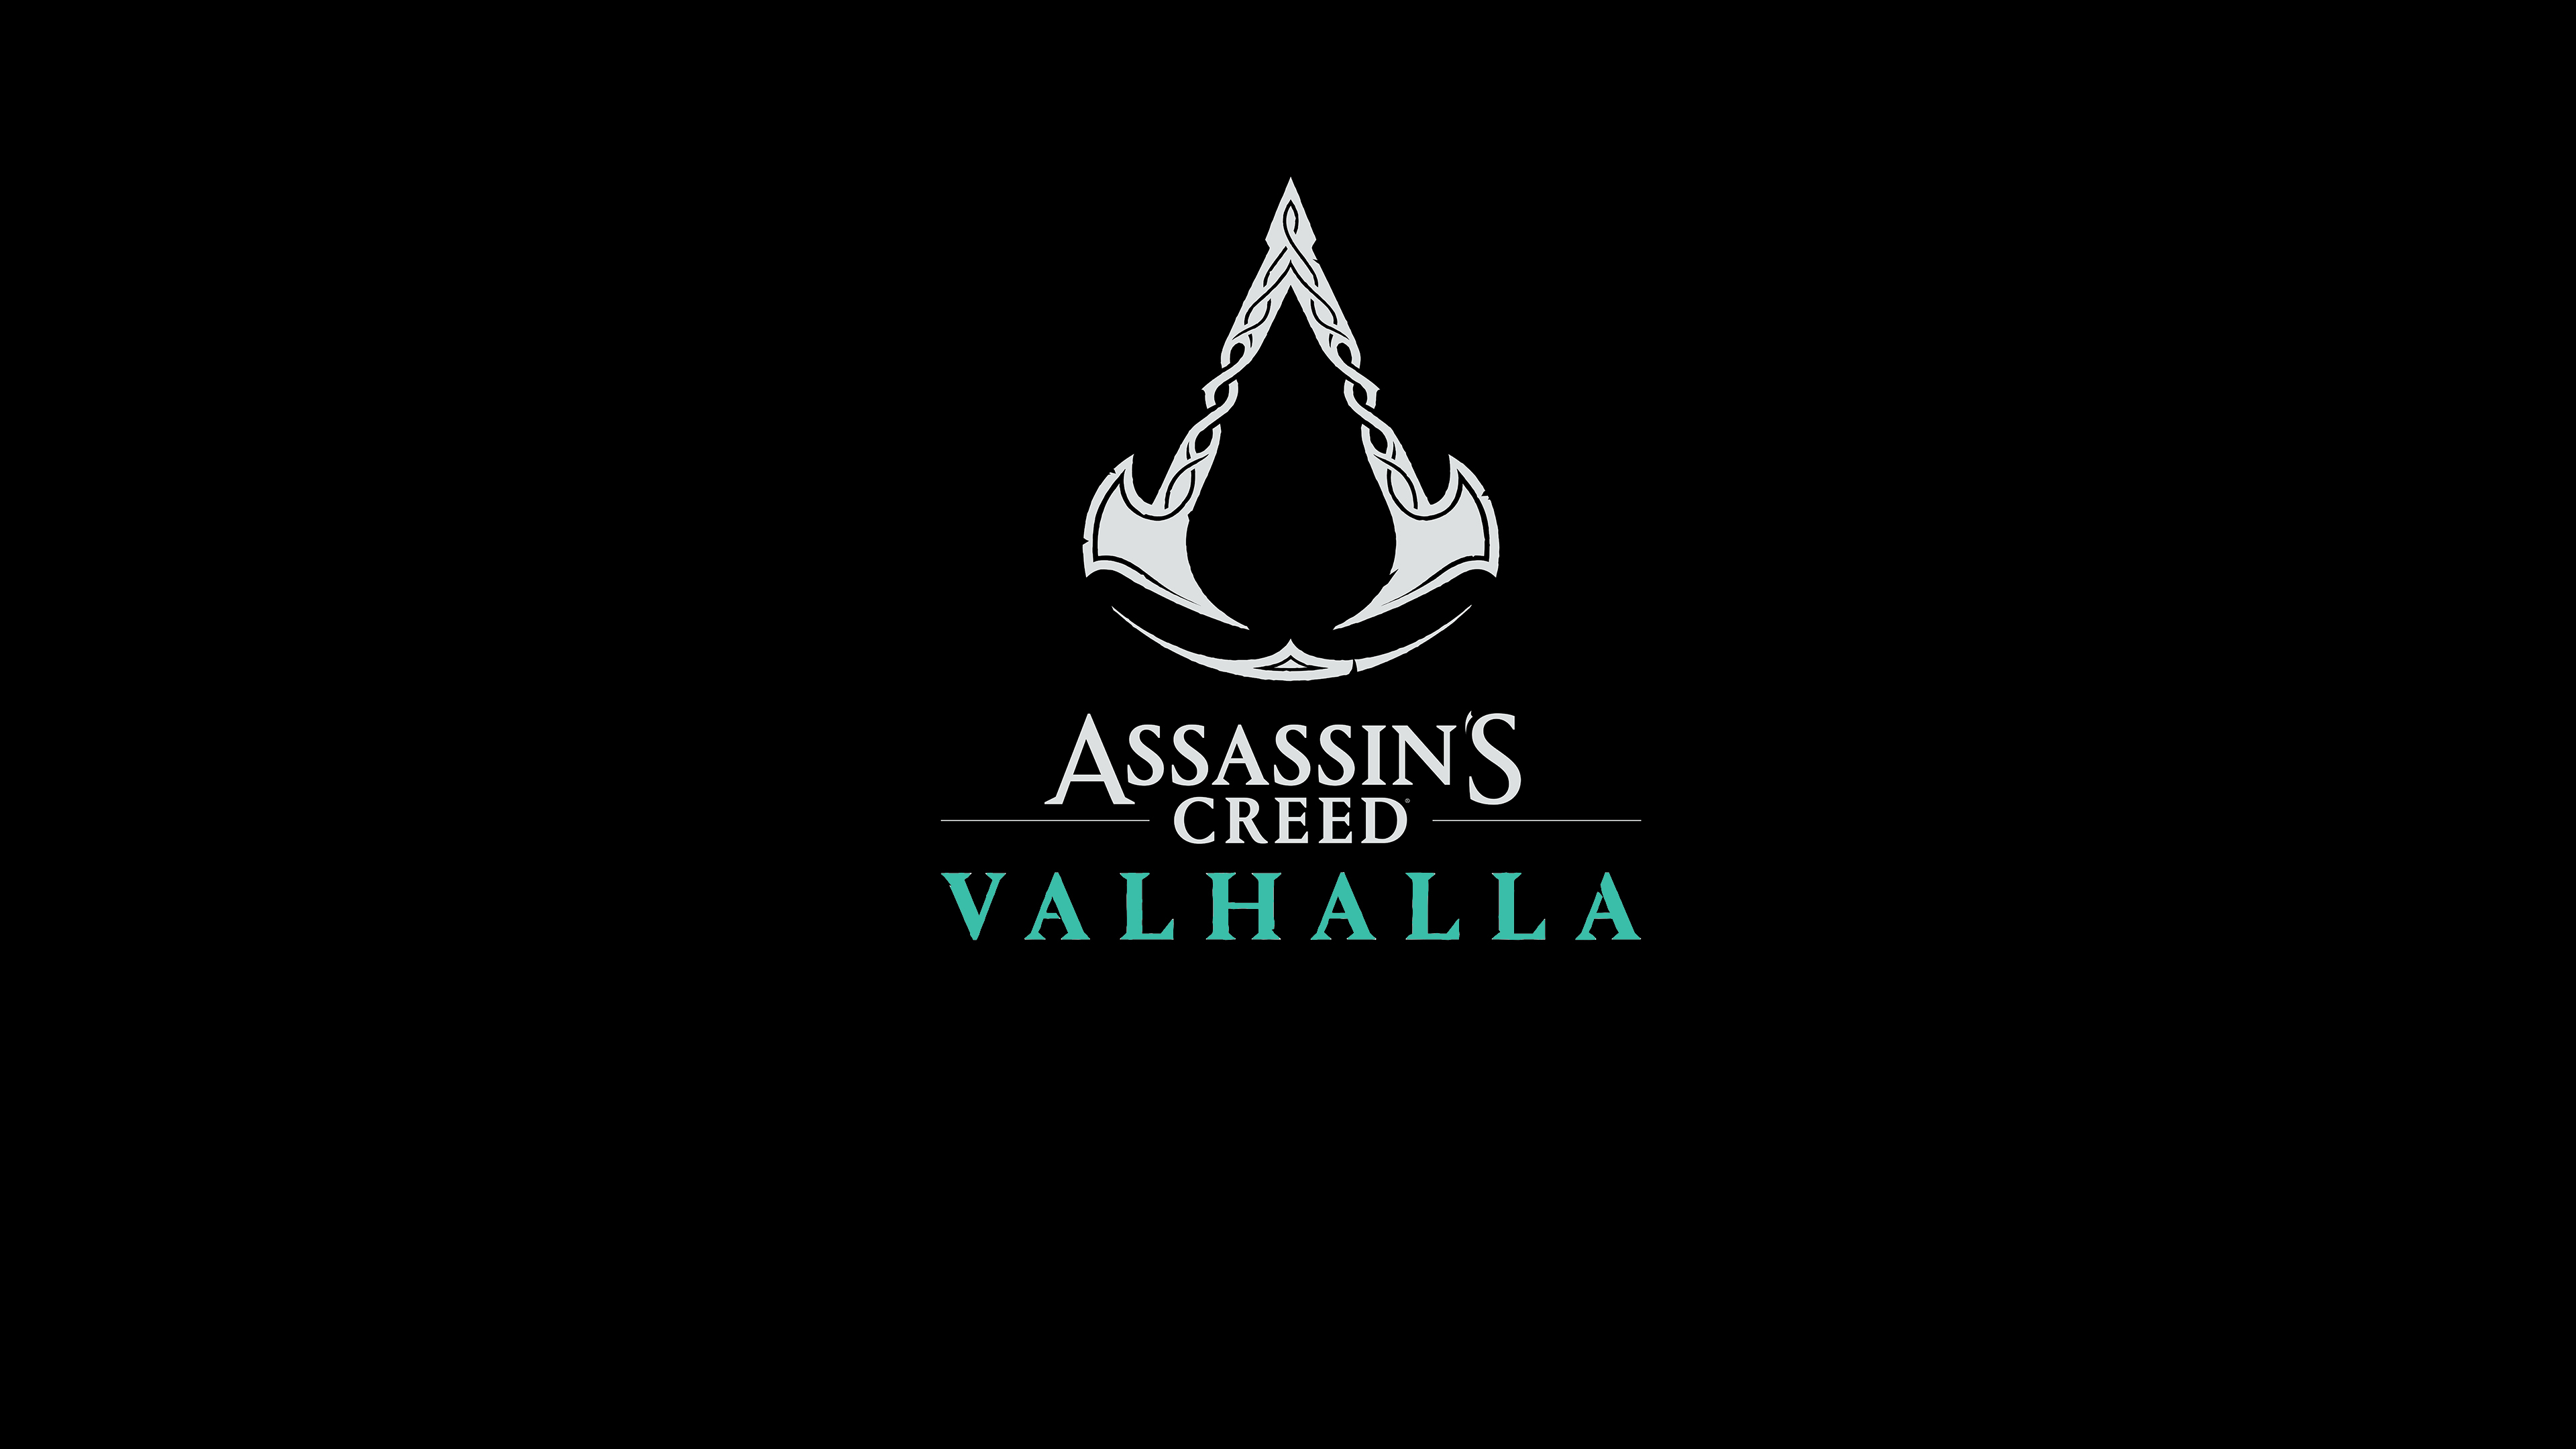 2560x1440 Assassins Creed Valhalla 4K Game 1440P Resolution 3840x2160